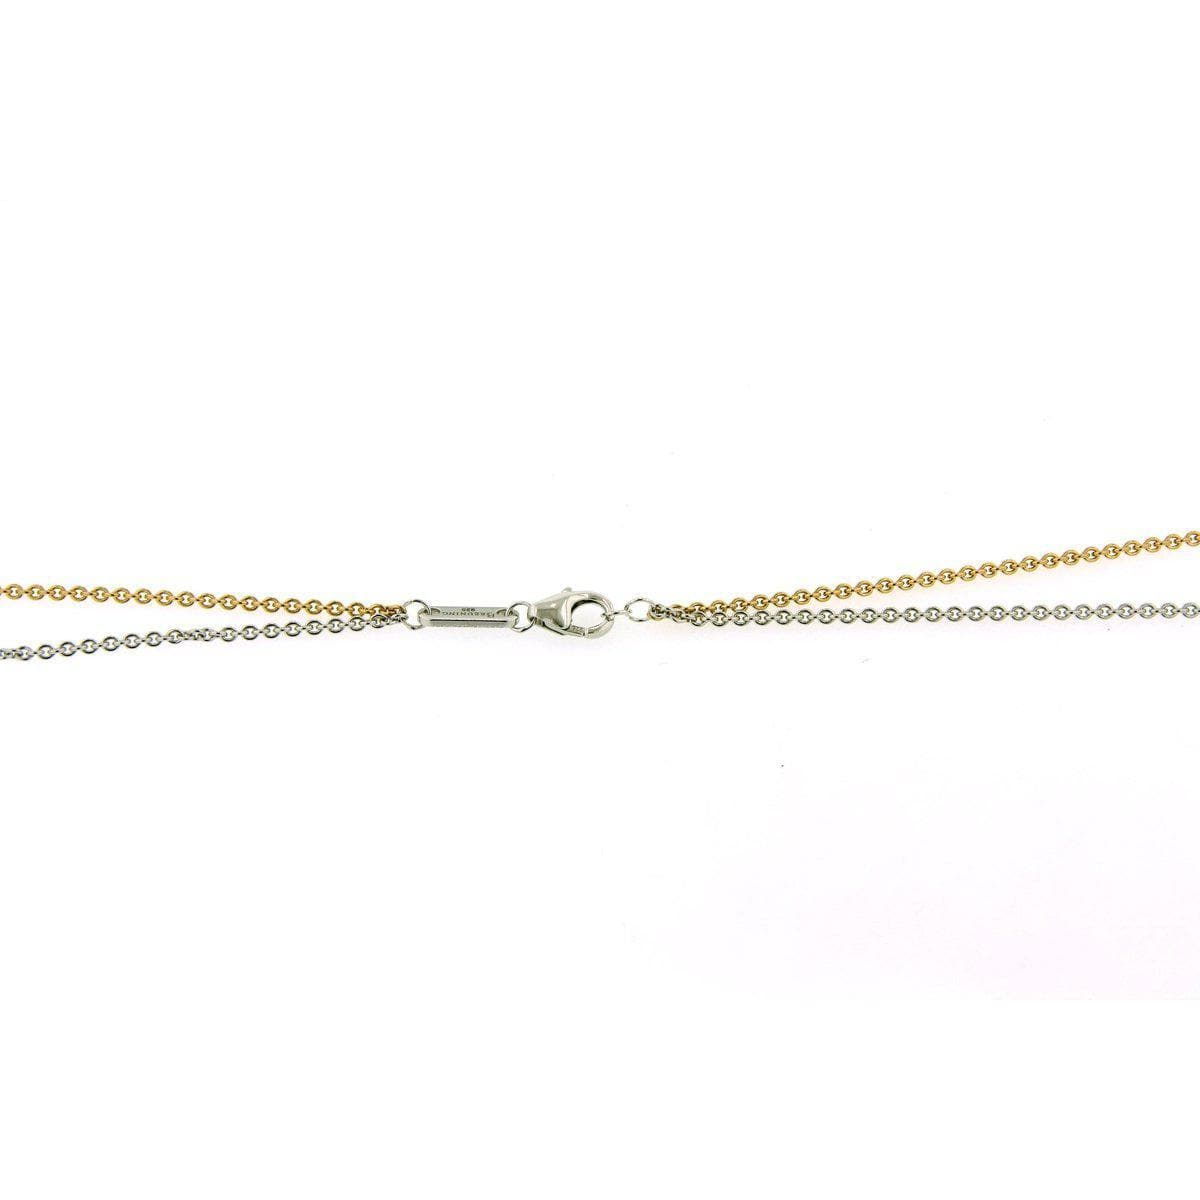 Rose Gold & Rhodium Plated Sterling Silver Double Chain - 64/01174 RH/R - Breuning